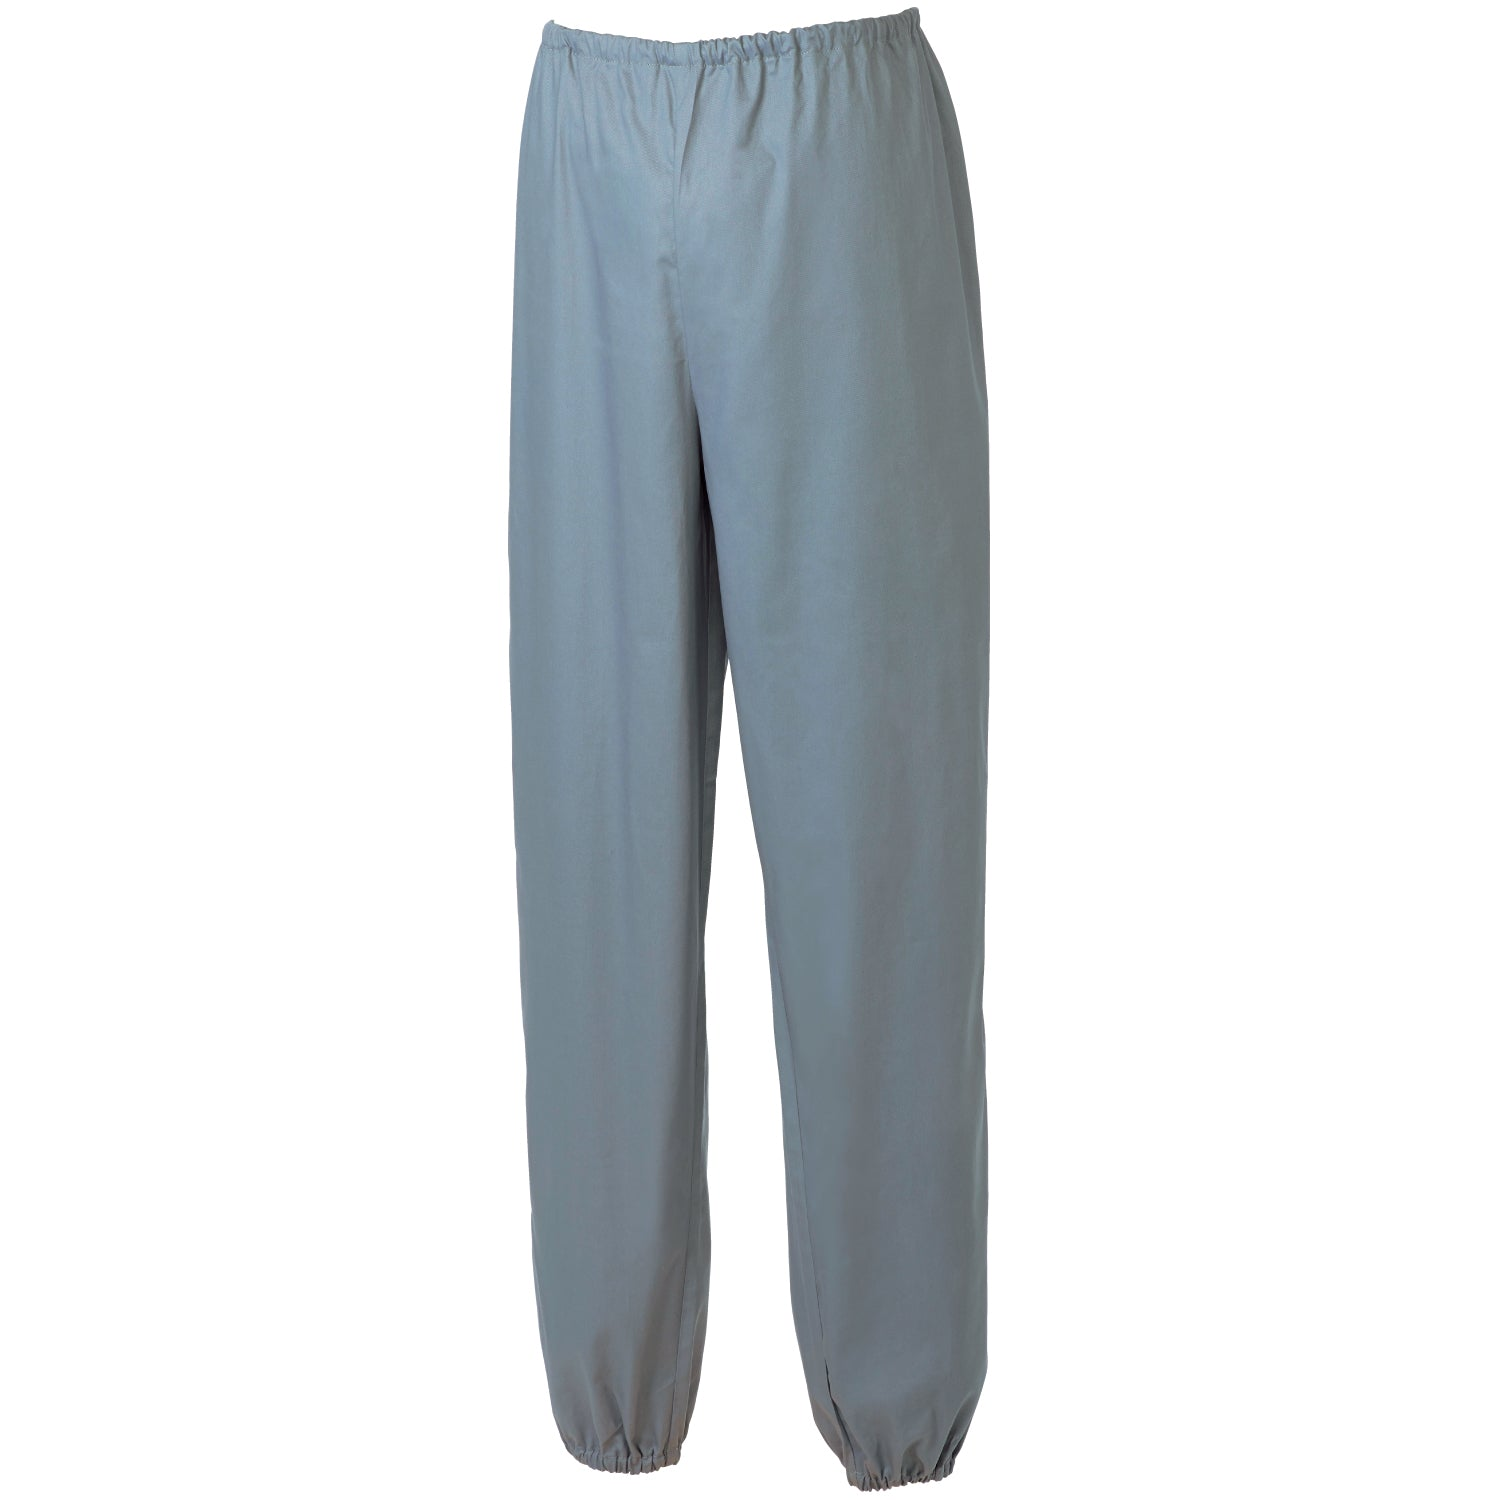 SOWA 10049 100% cotton Yakke pants